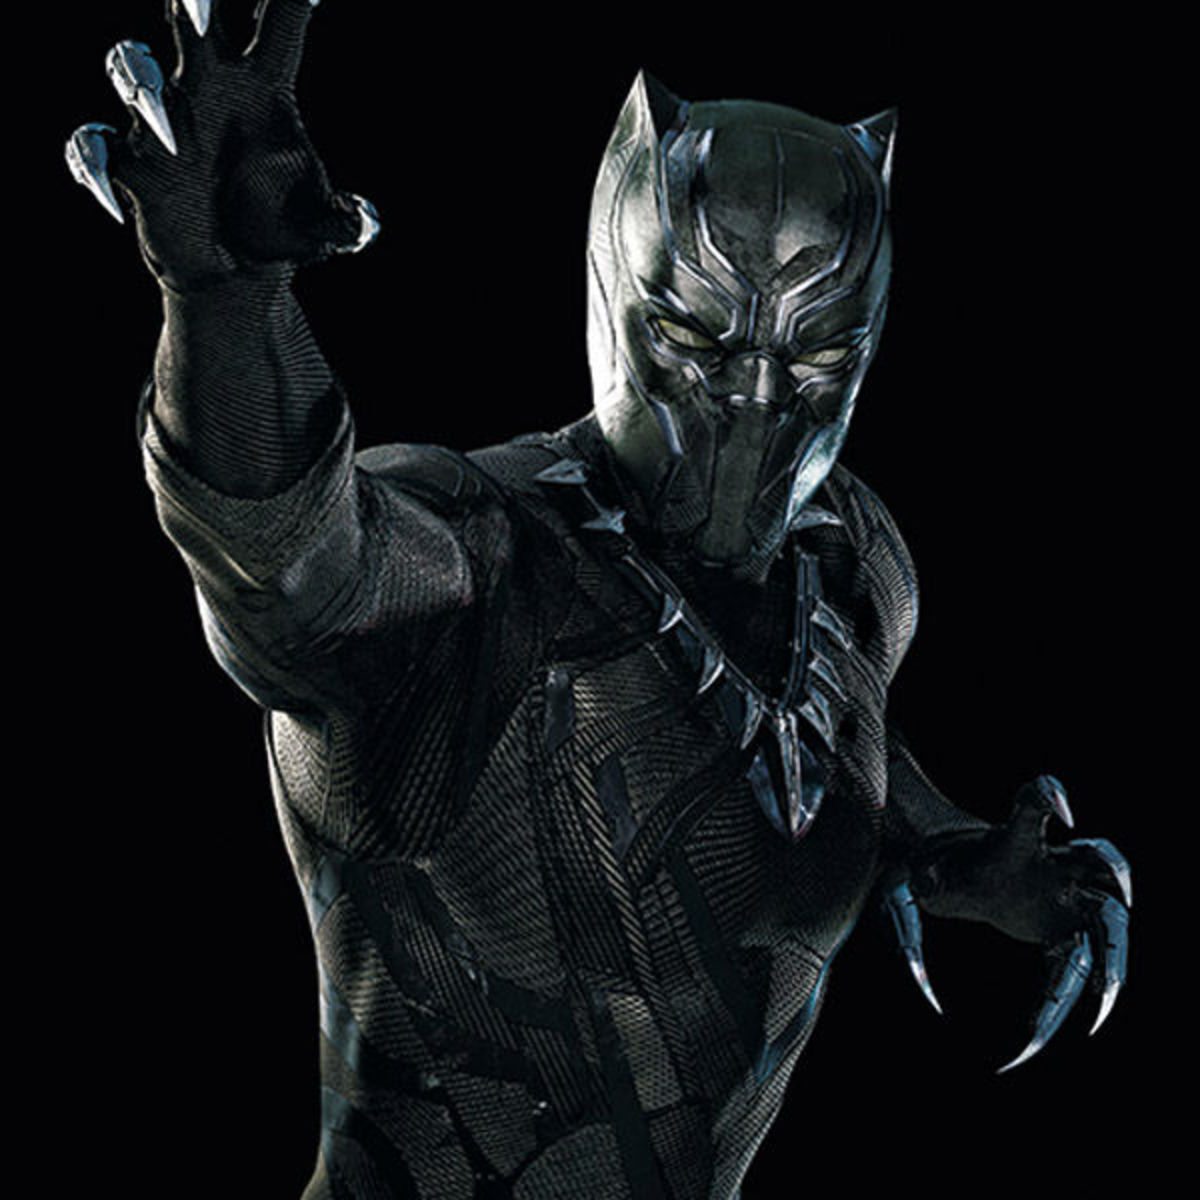 Official-Captain-America-Civil-War-Black-Panther-Image.jpg